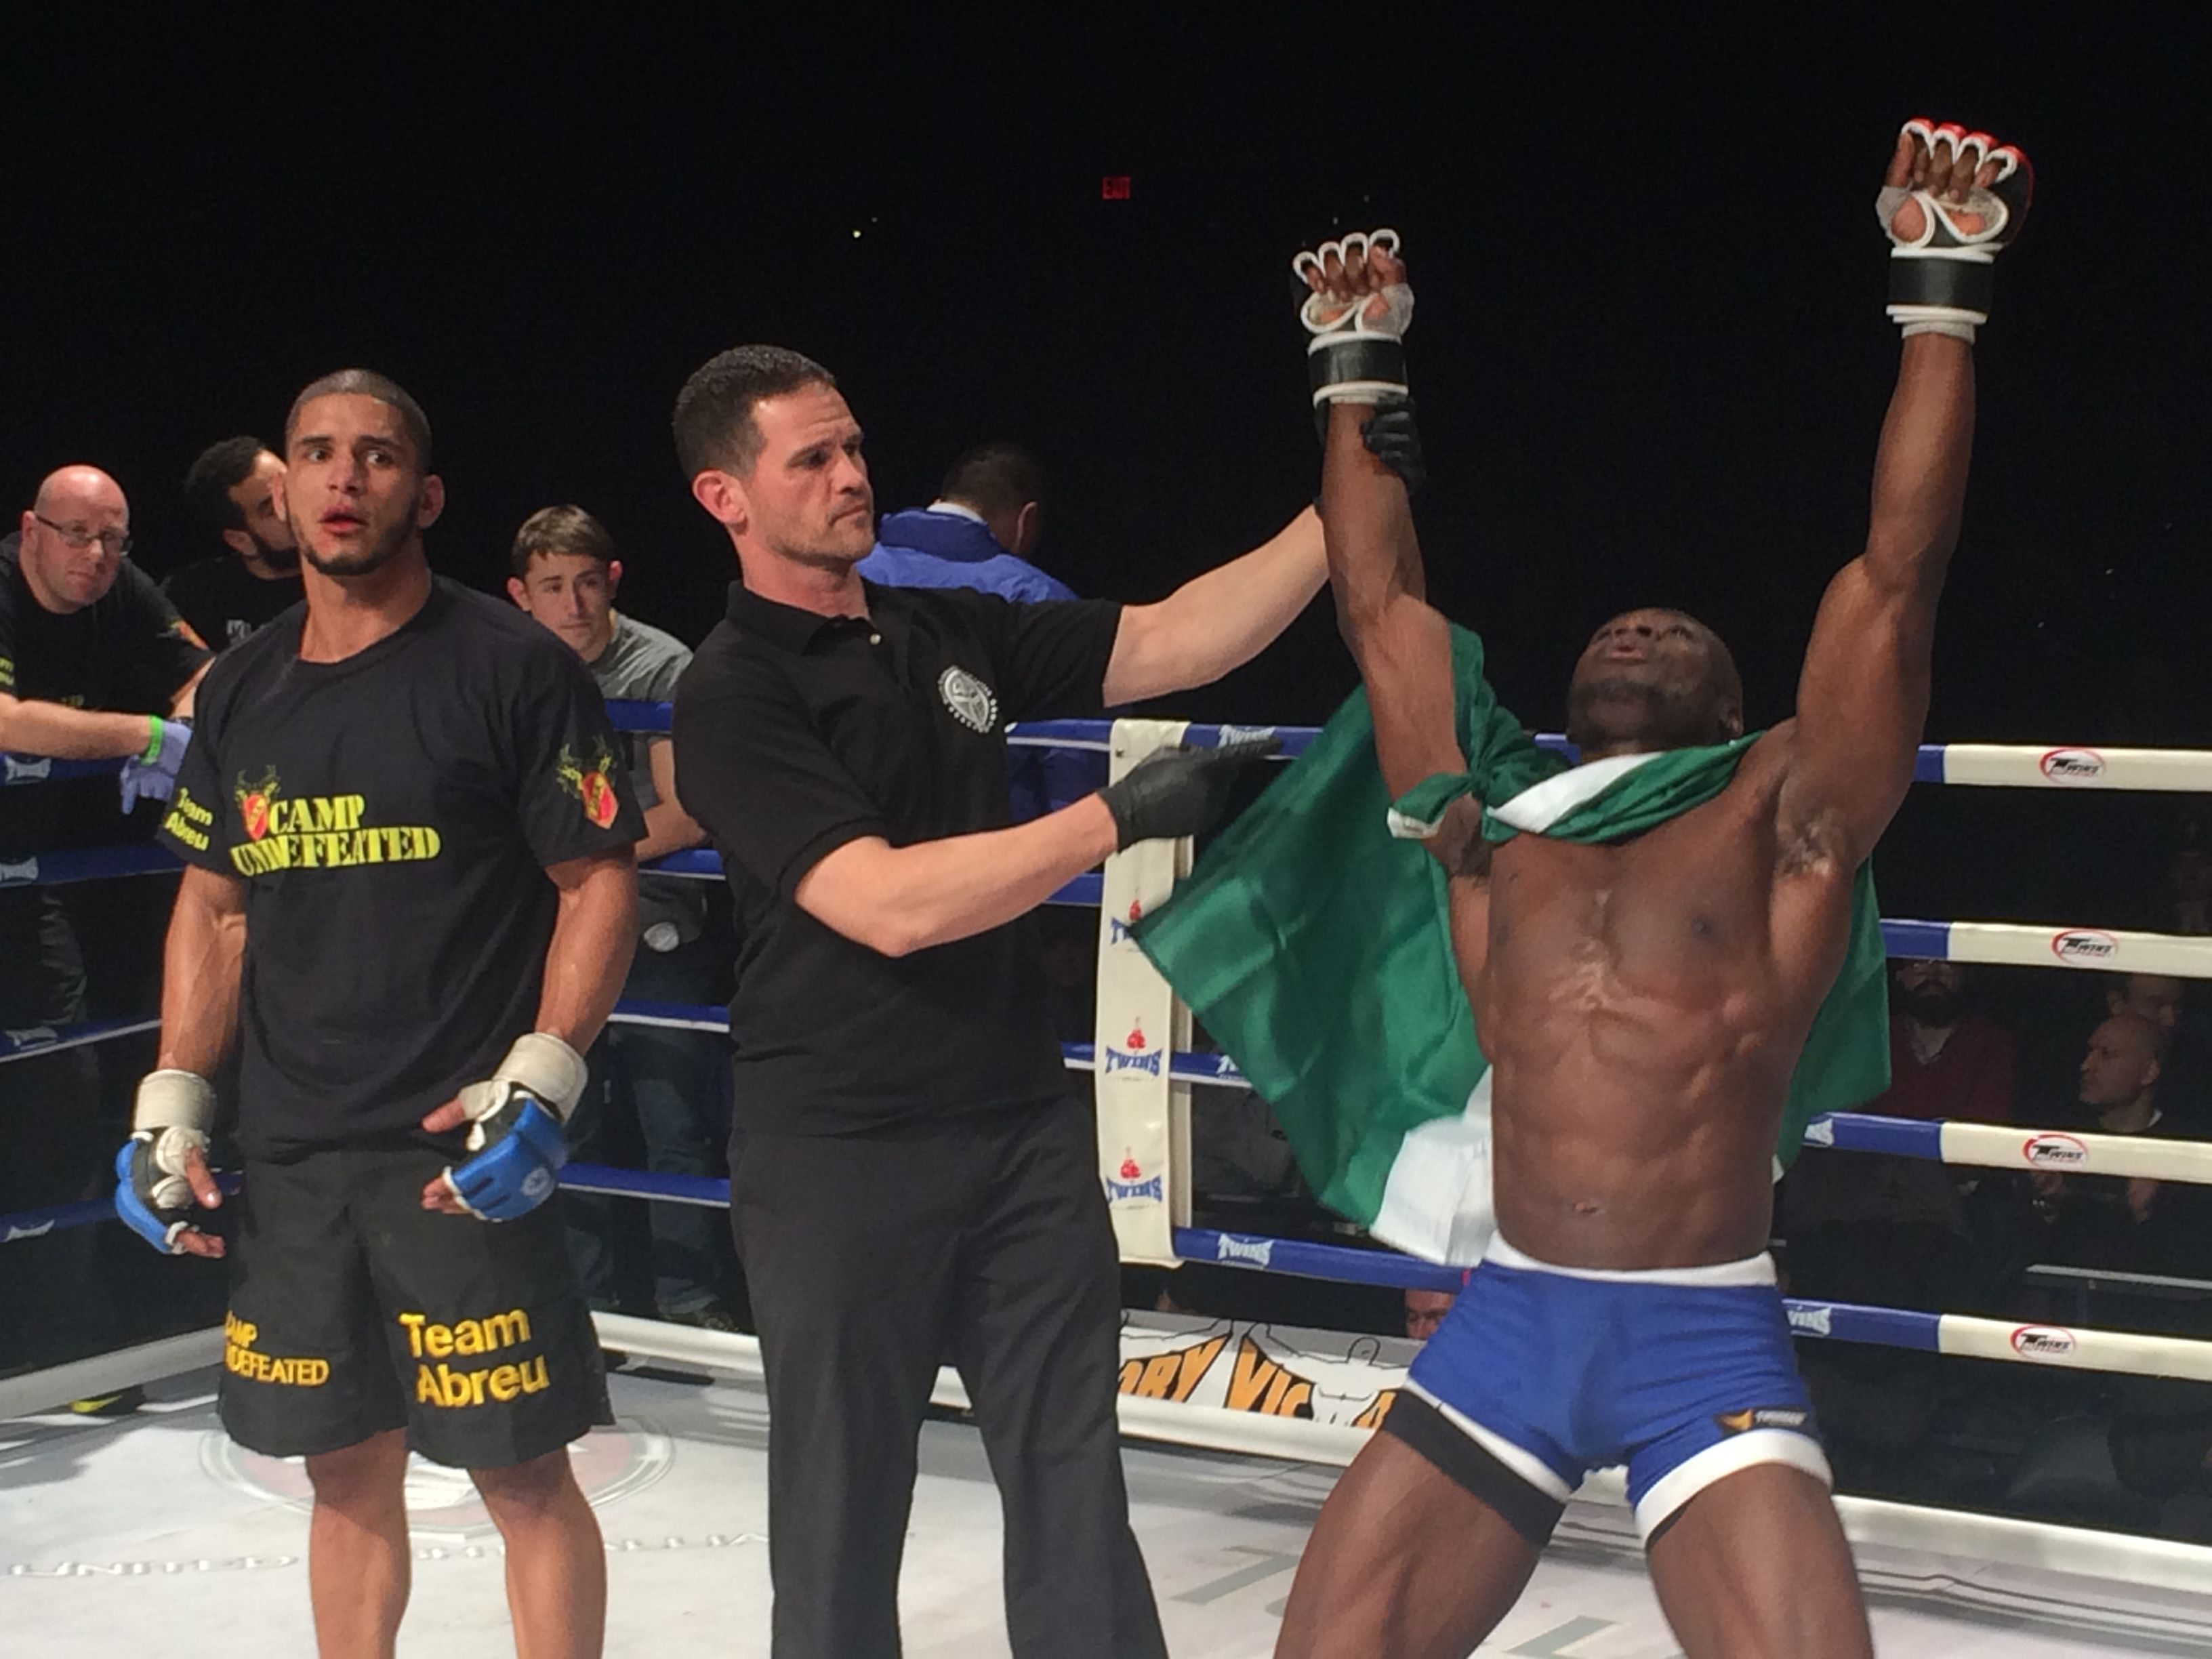 Class One Fighter Chike Obi Getting His Hand Raised After His 3rd Tko Victory At The First Mma Show At Madison Square Garden Mixed Martial Arts Mma Martial